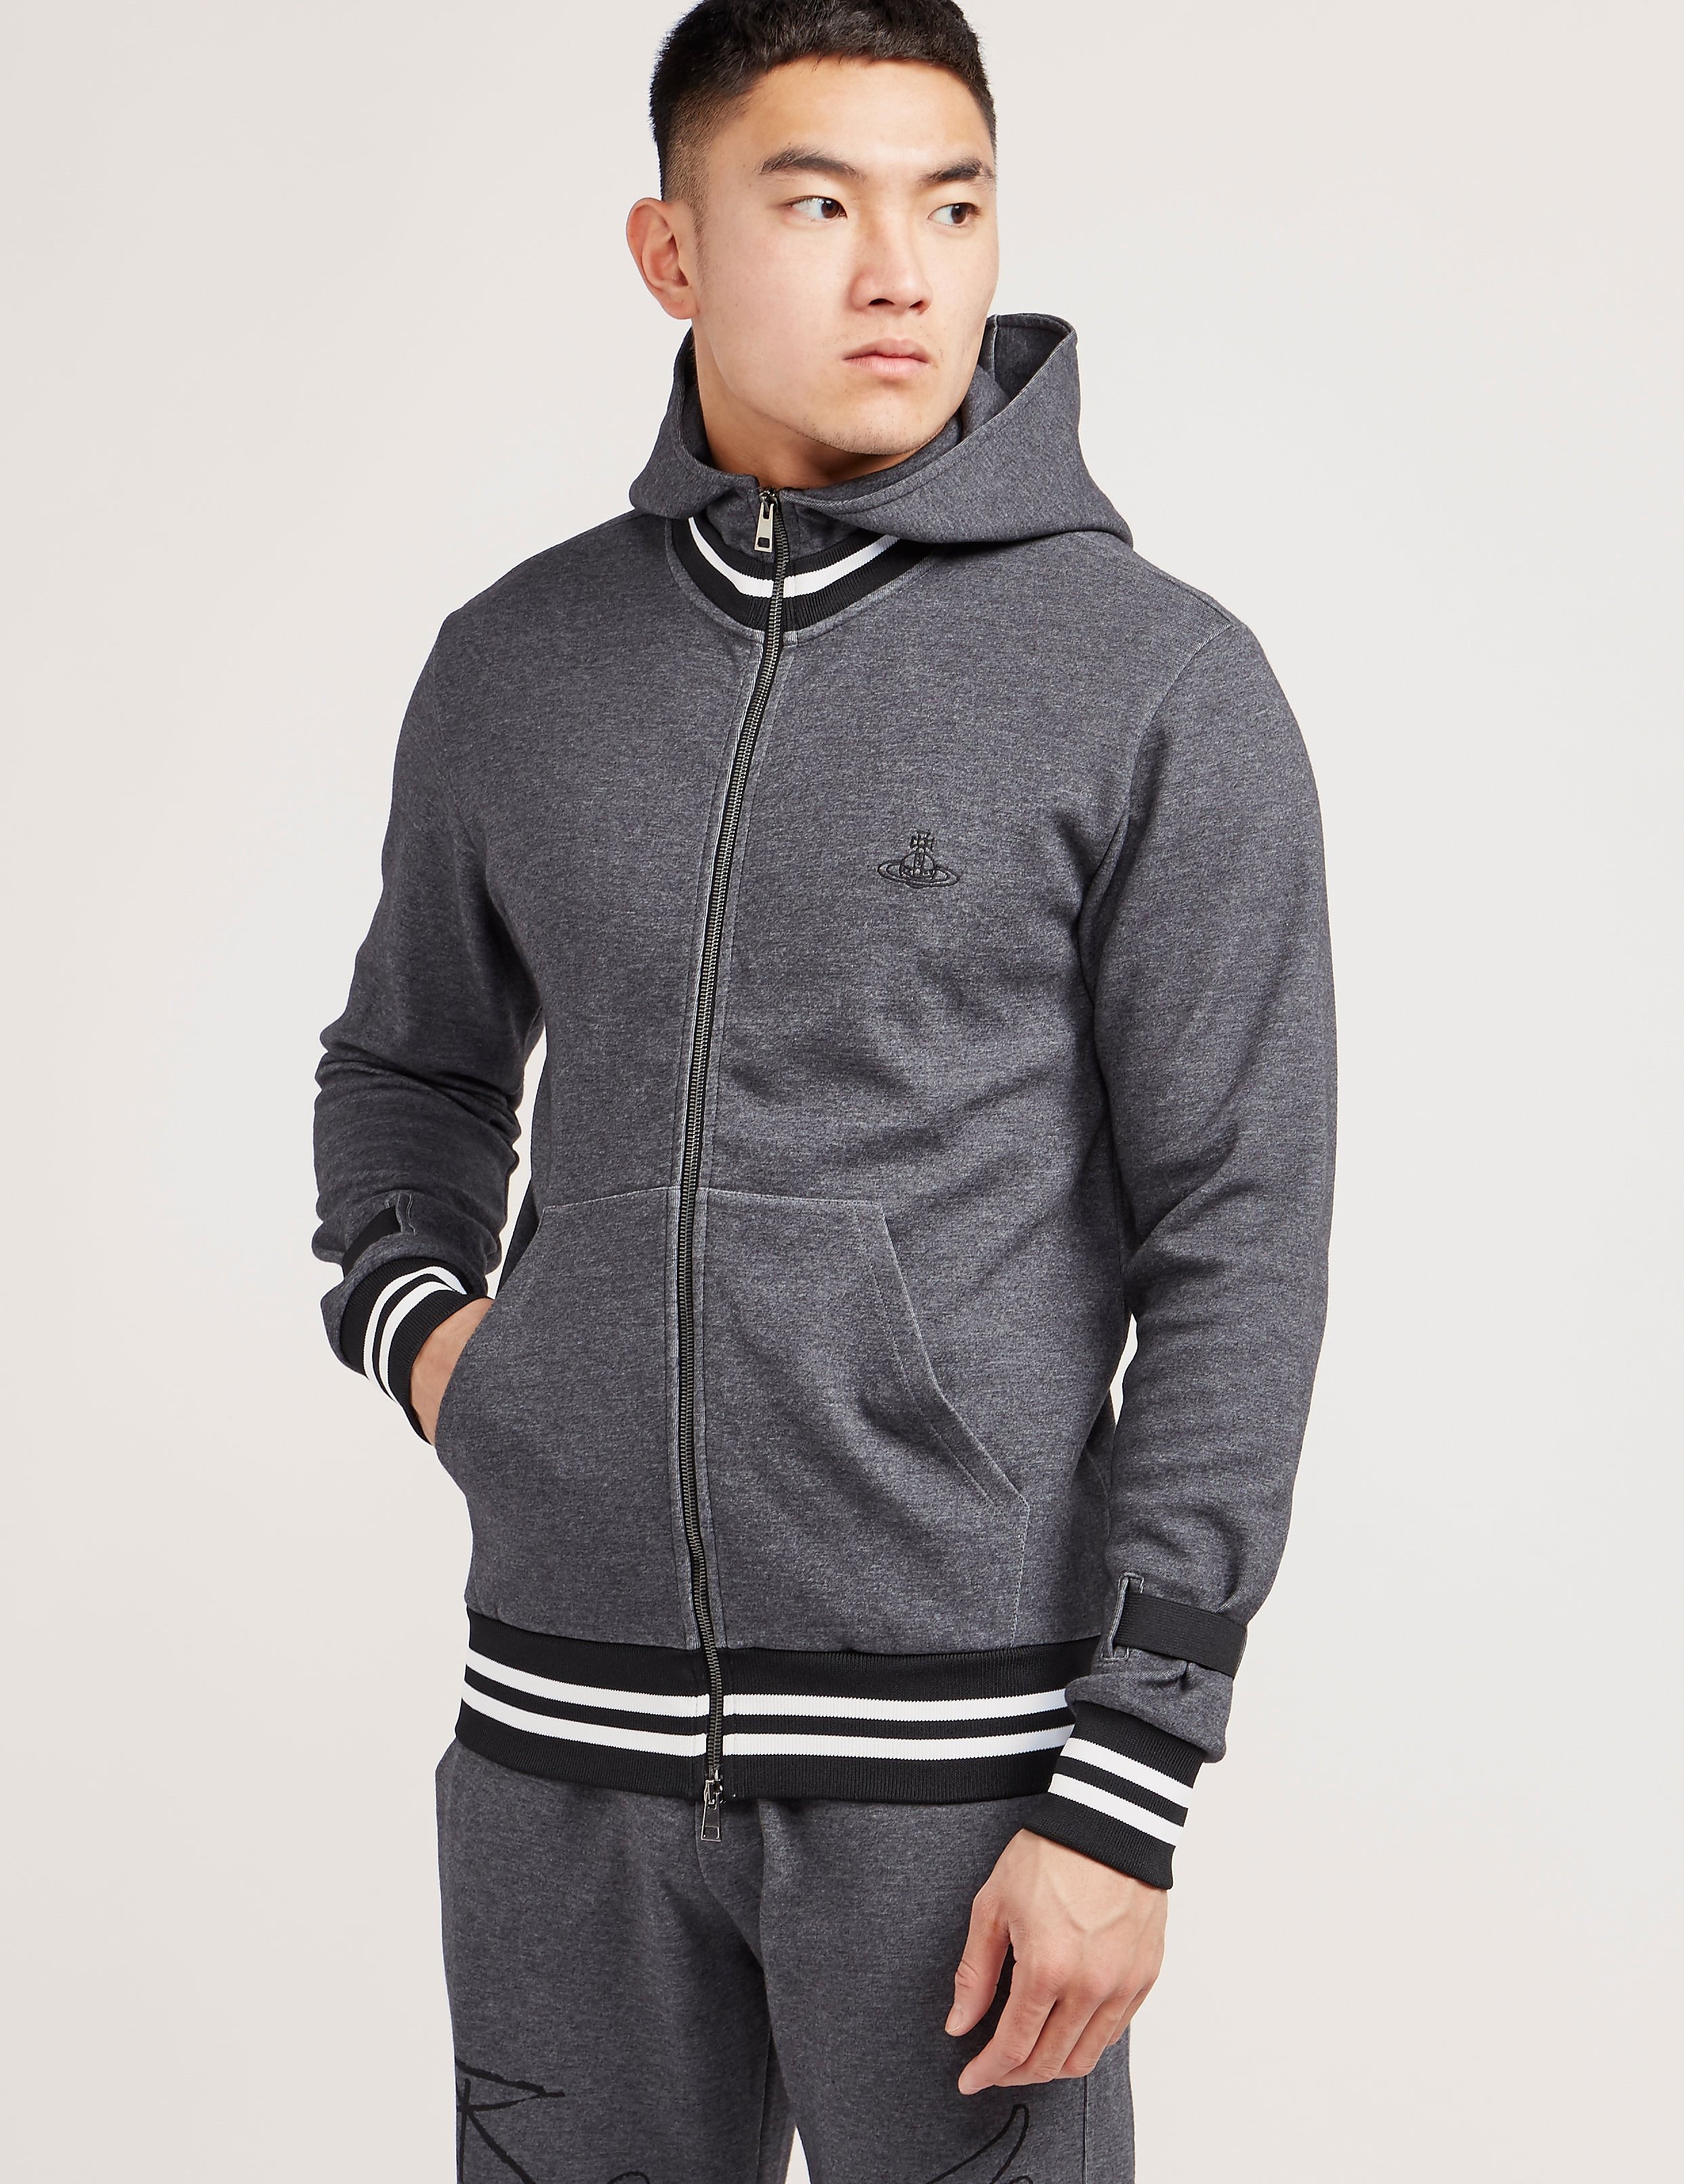 Vivienne Westwood Worker Hooded Track Top